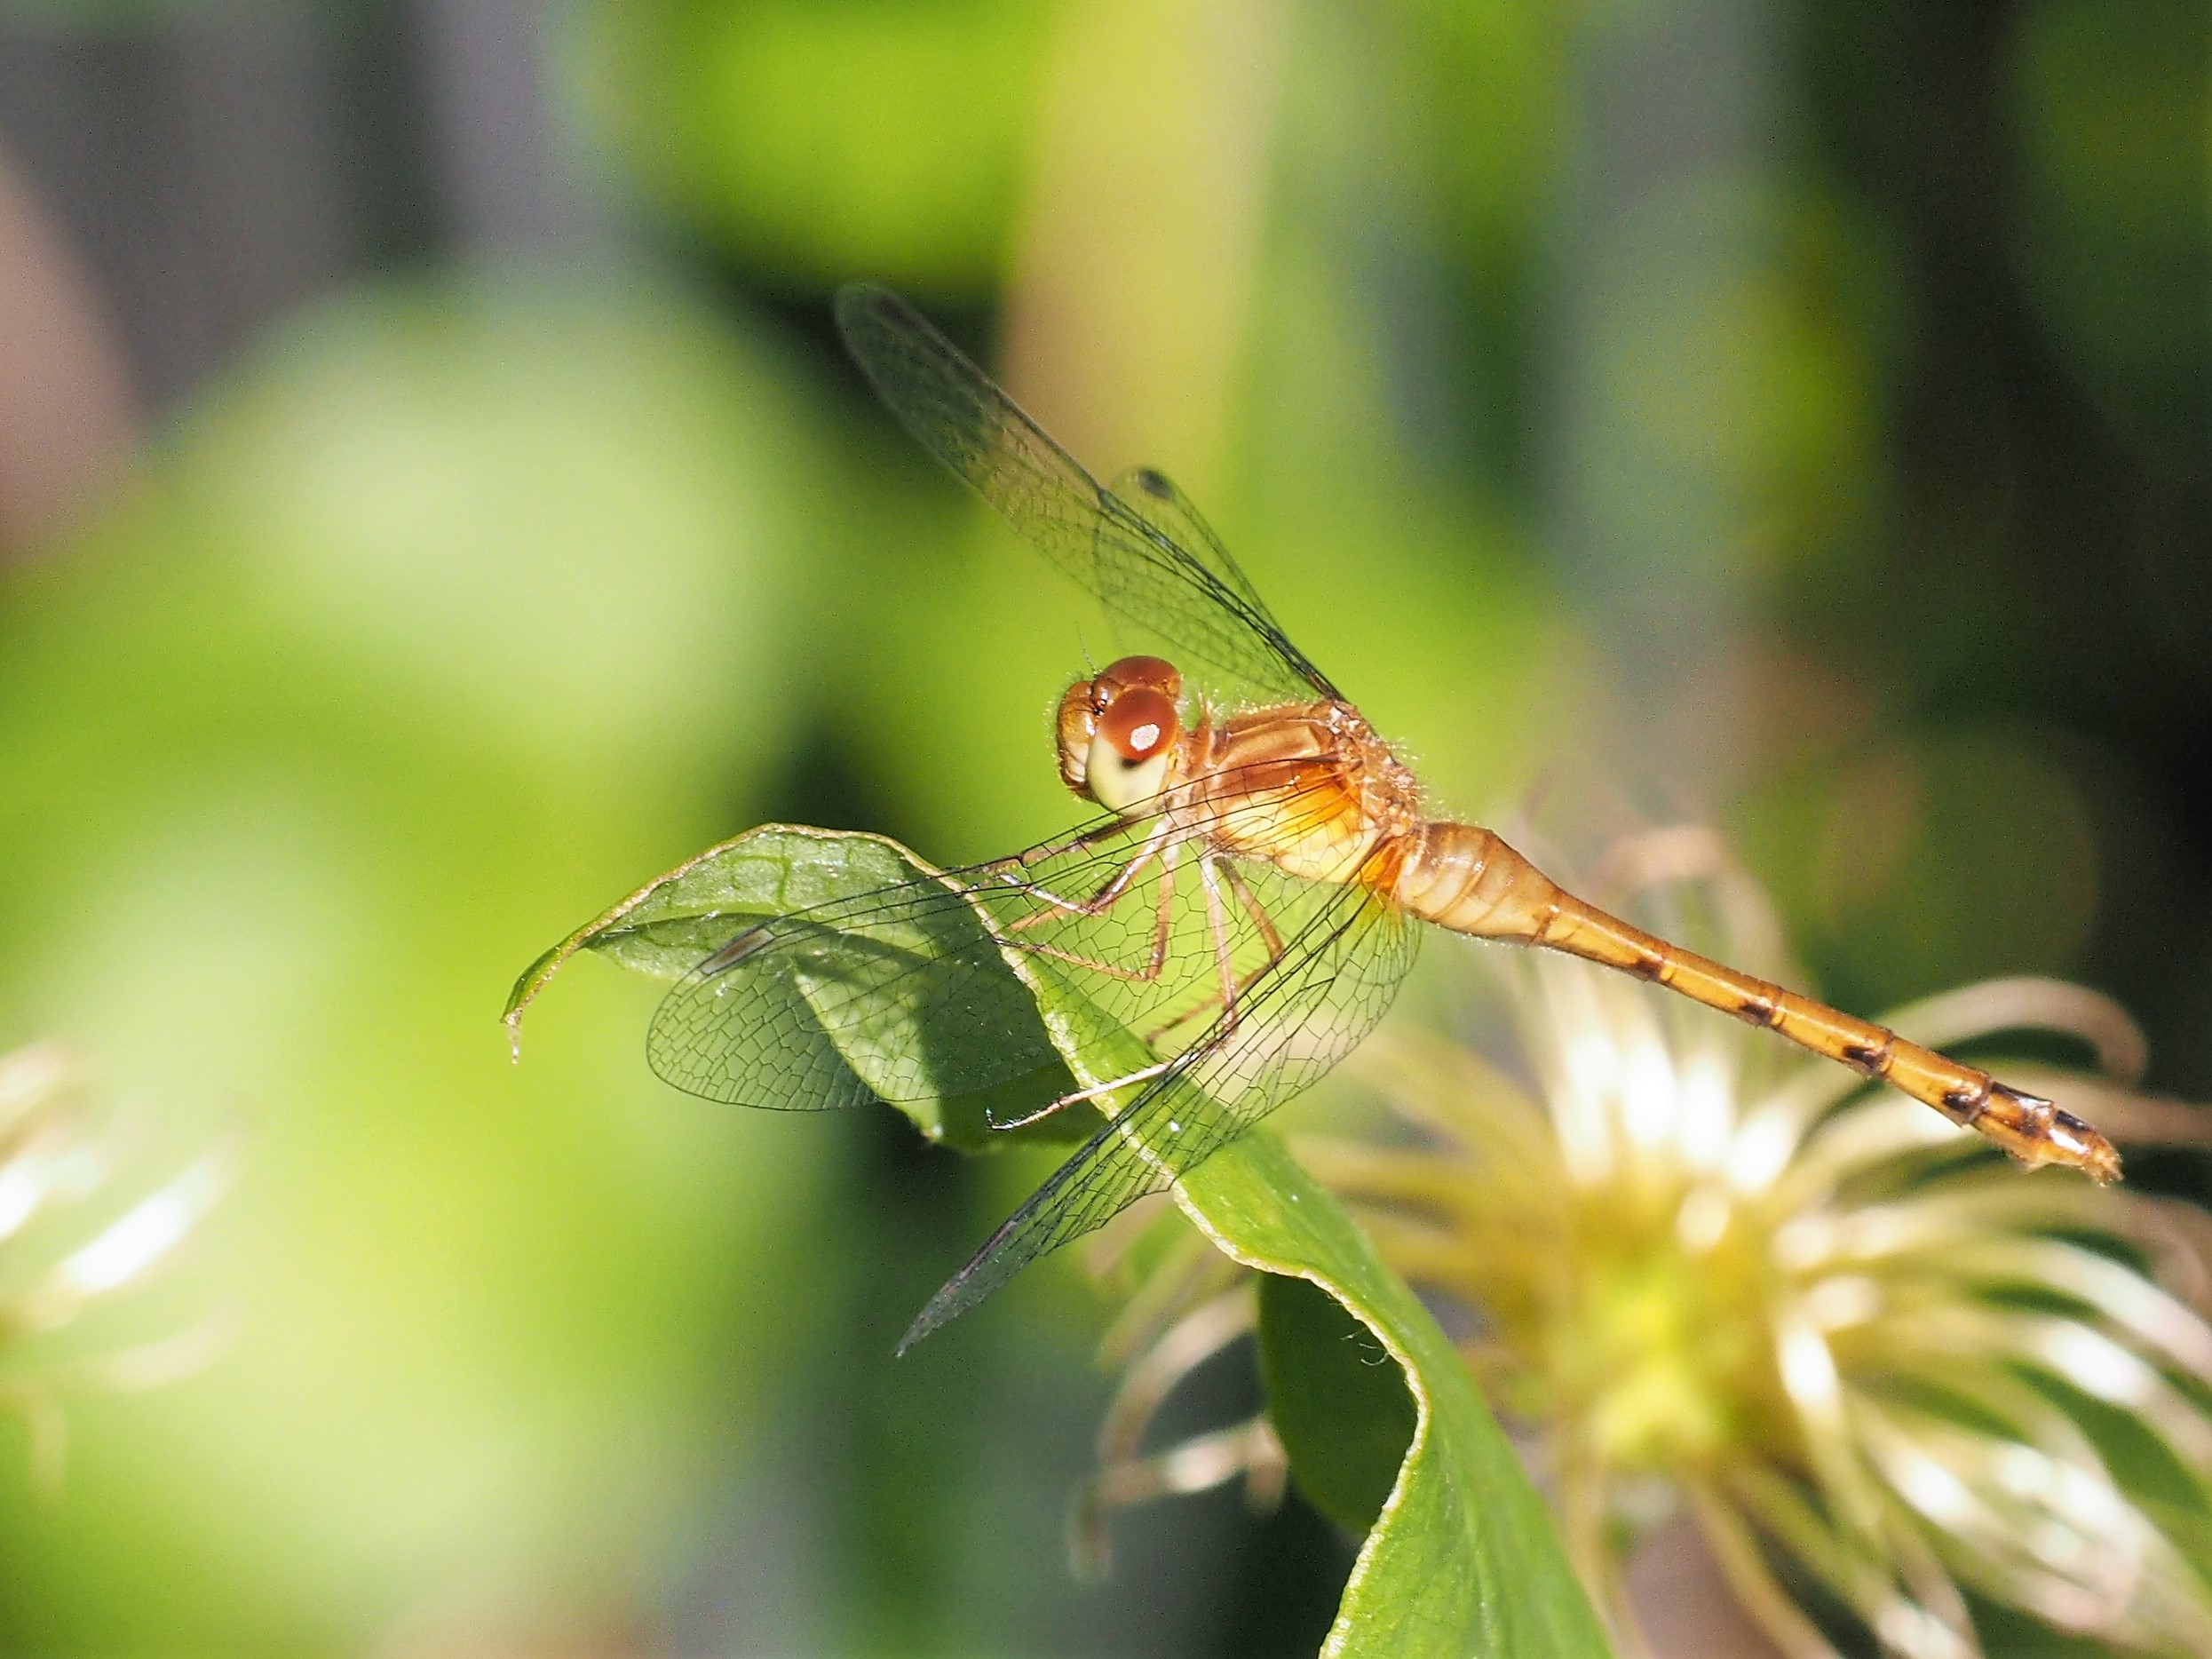 Side view of dragonfly resting on a leaf.